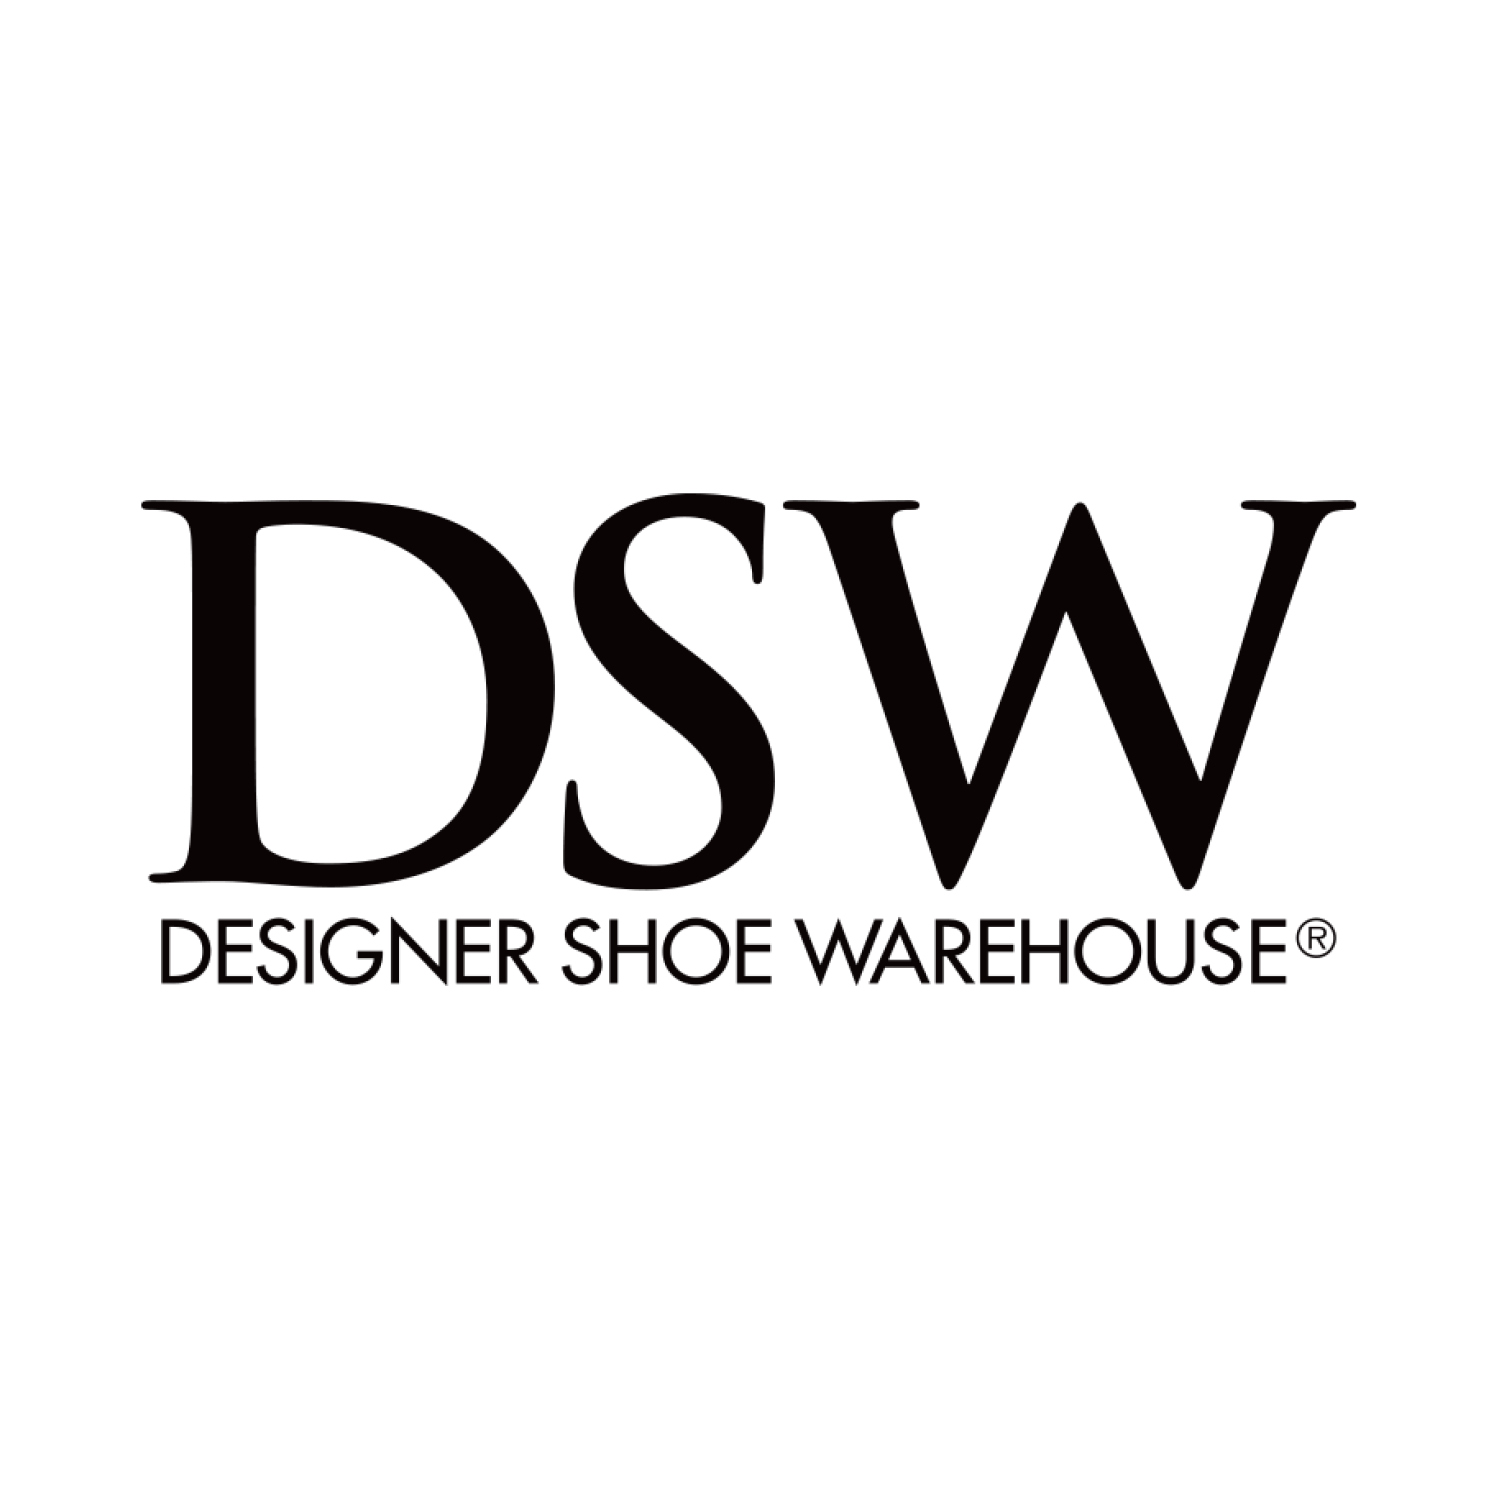 DSW Menu Sign - Price Points: $69.99 - FR